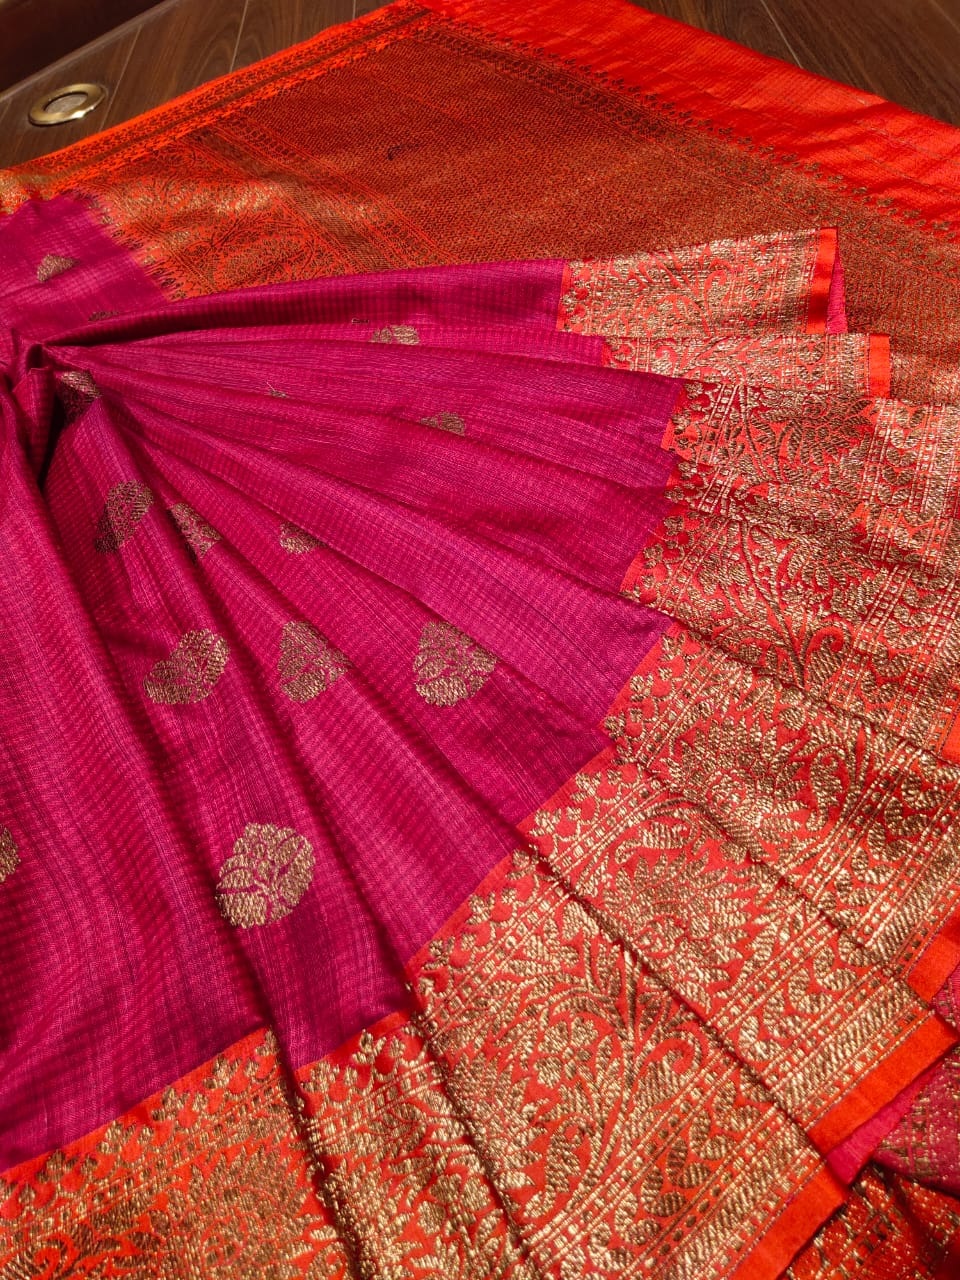 Pink dupion silk saree with golden zari weaving and butties